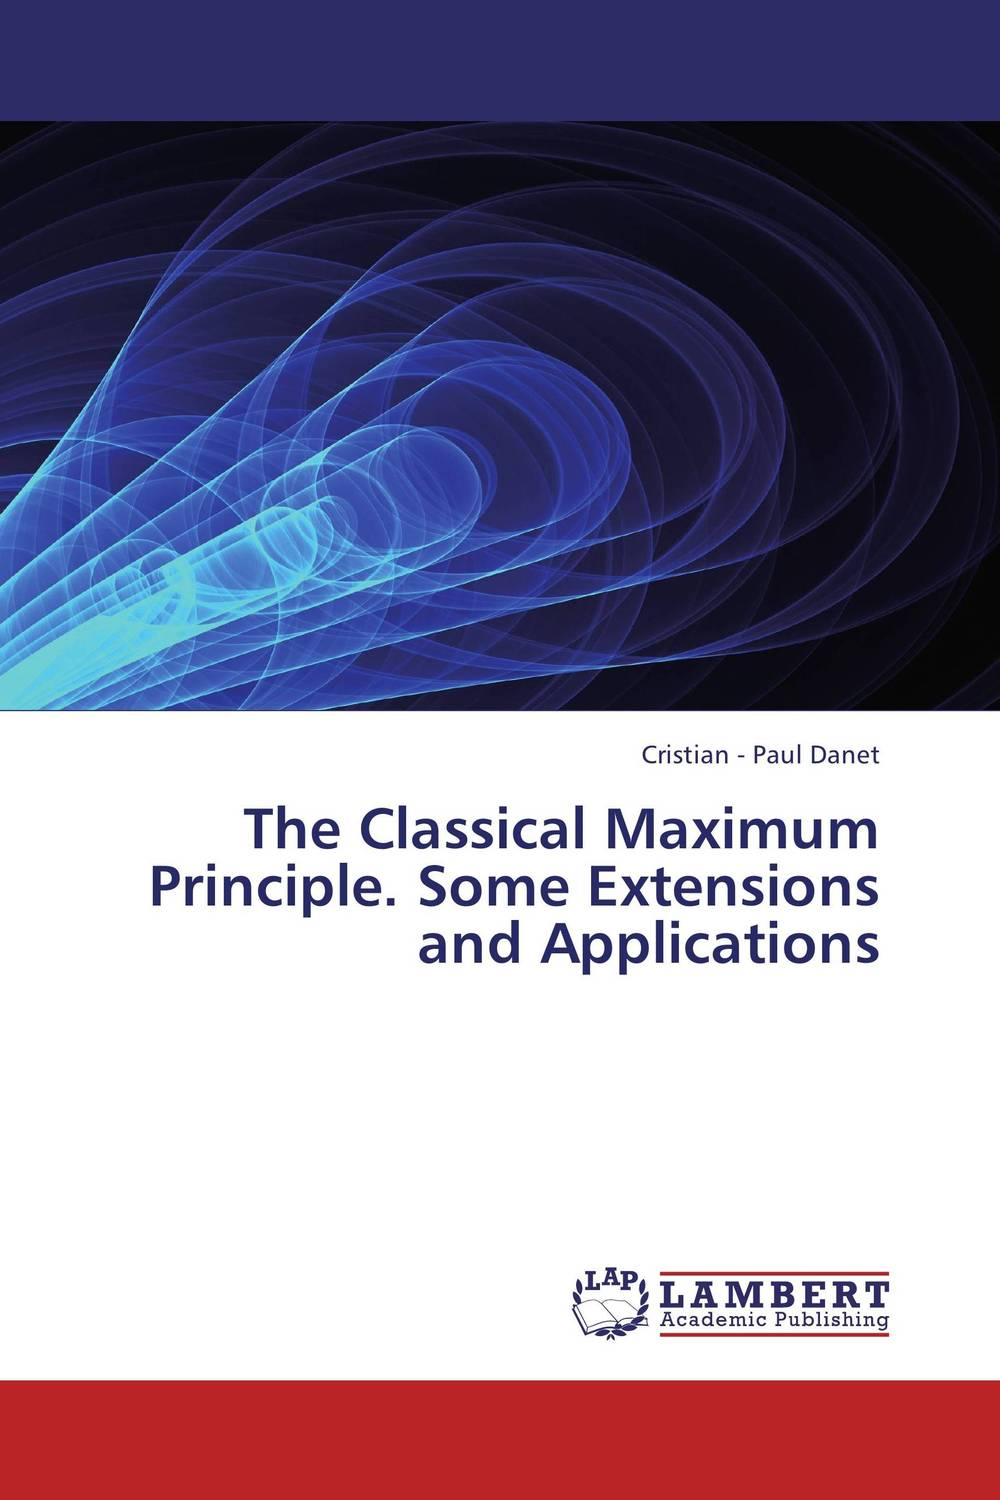 The Classical Maximum Principle. Some Extensions and Applications